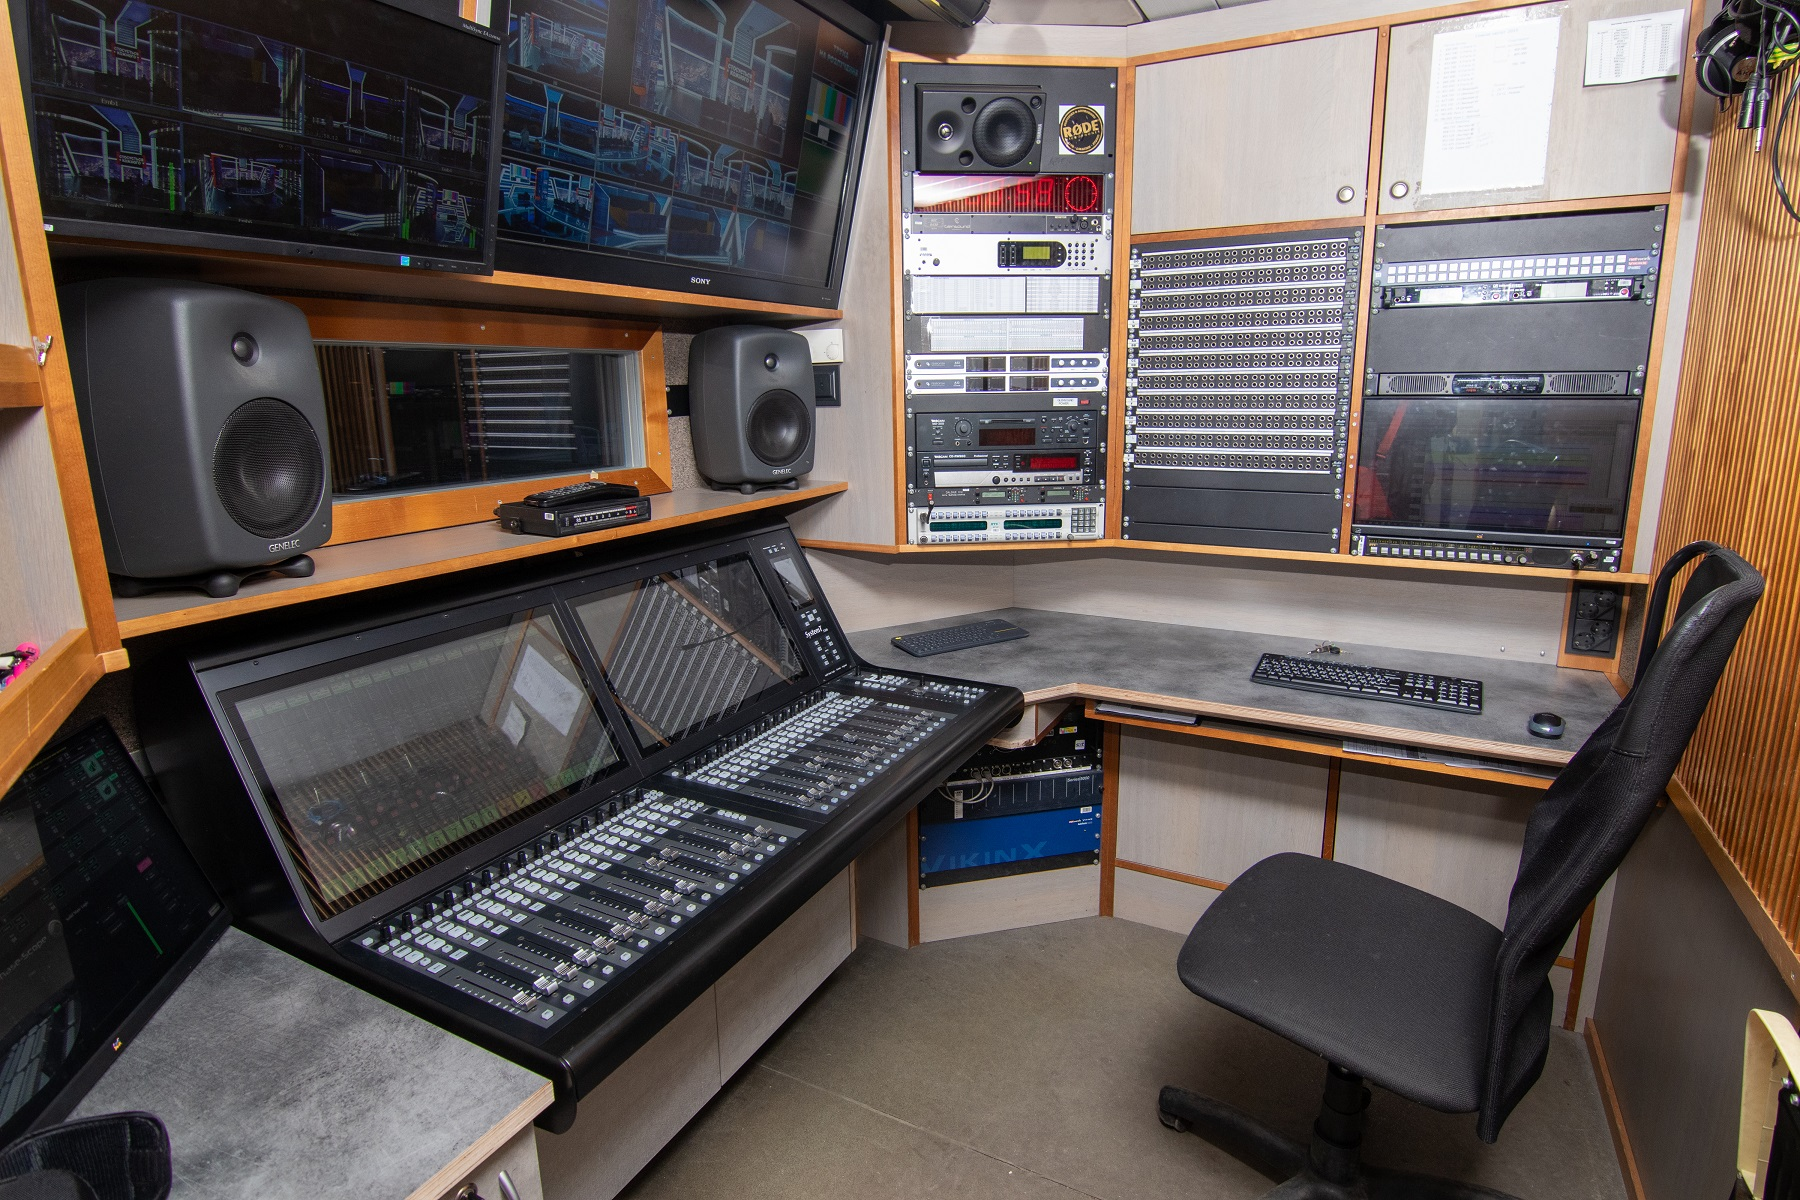 SSL TS300 with Dante protocol and Ross Carbonite Black Plus in Inter's OBVan Upgrade